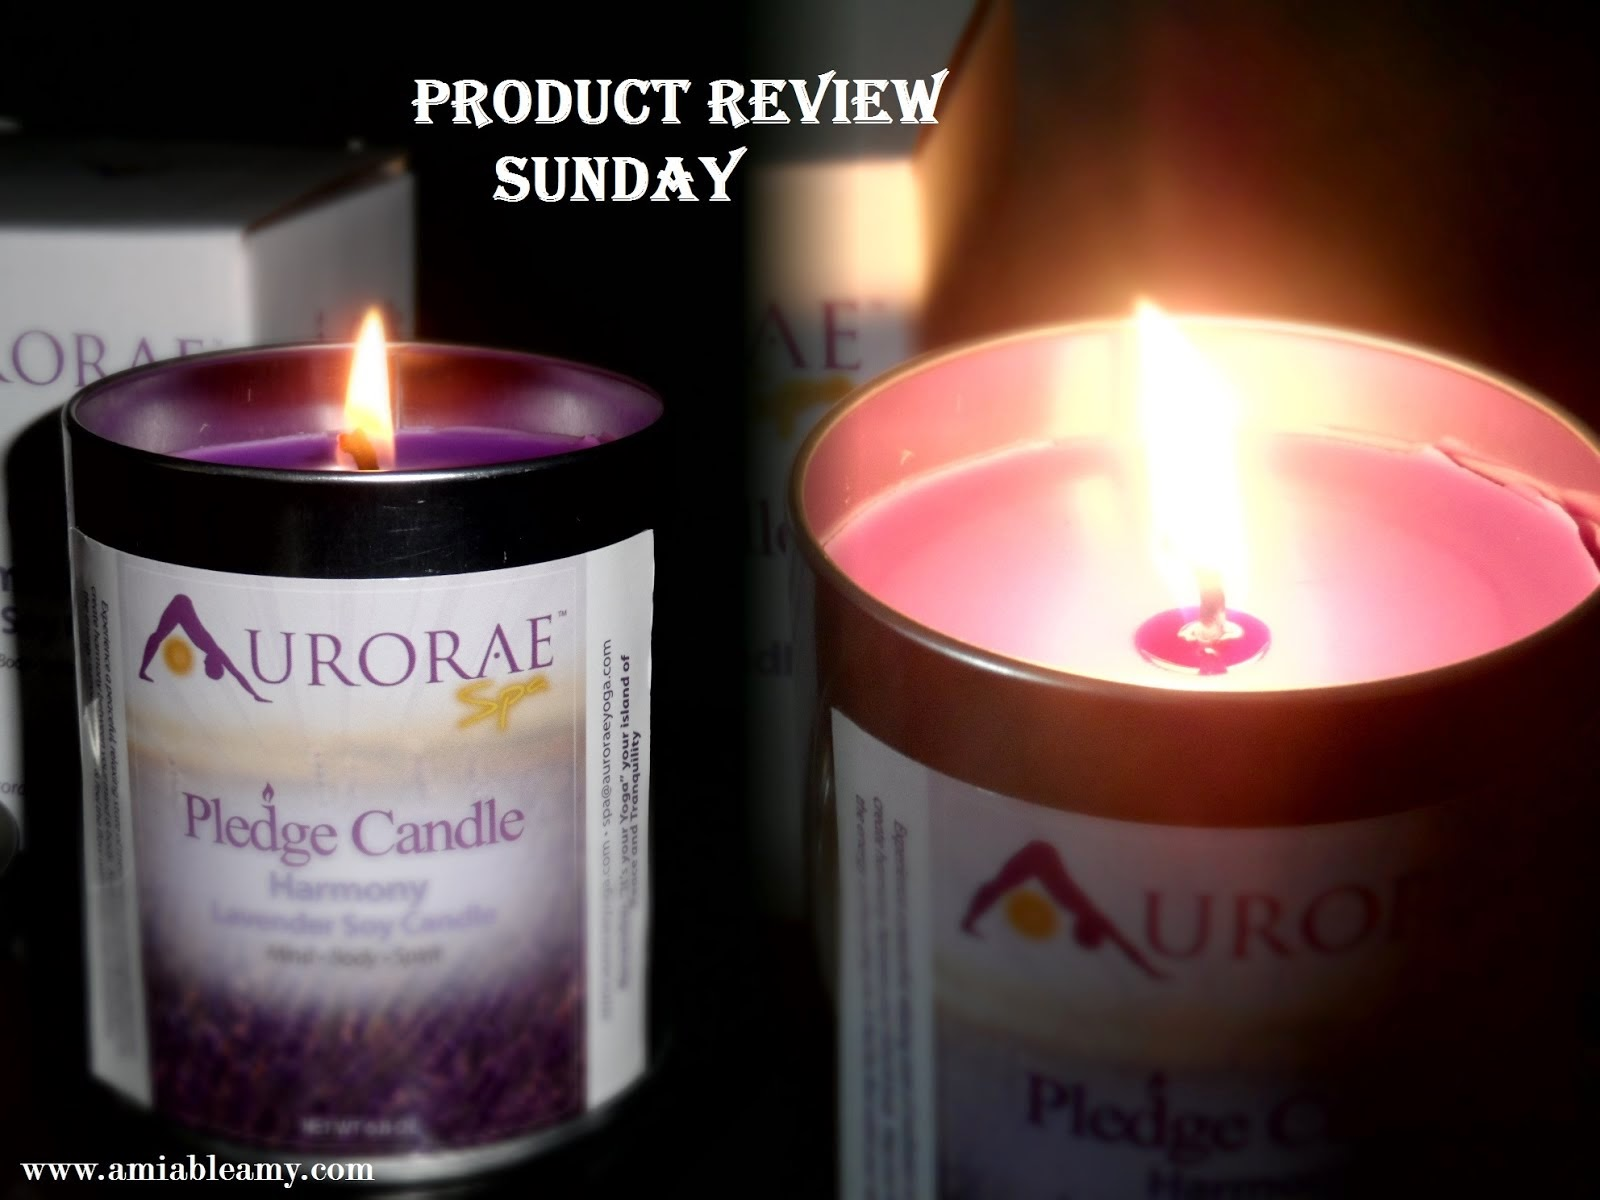 Product Review Sunday